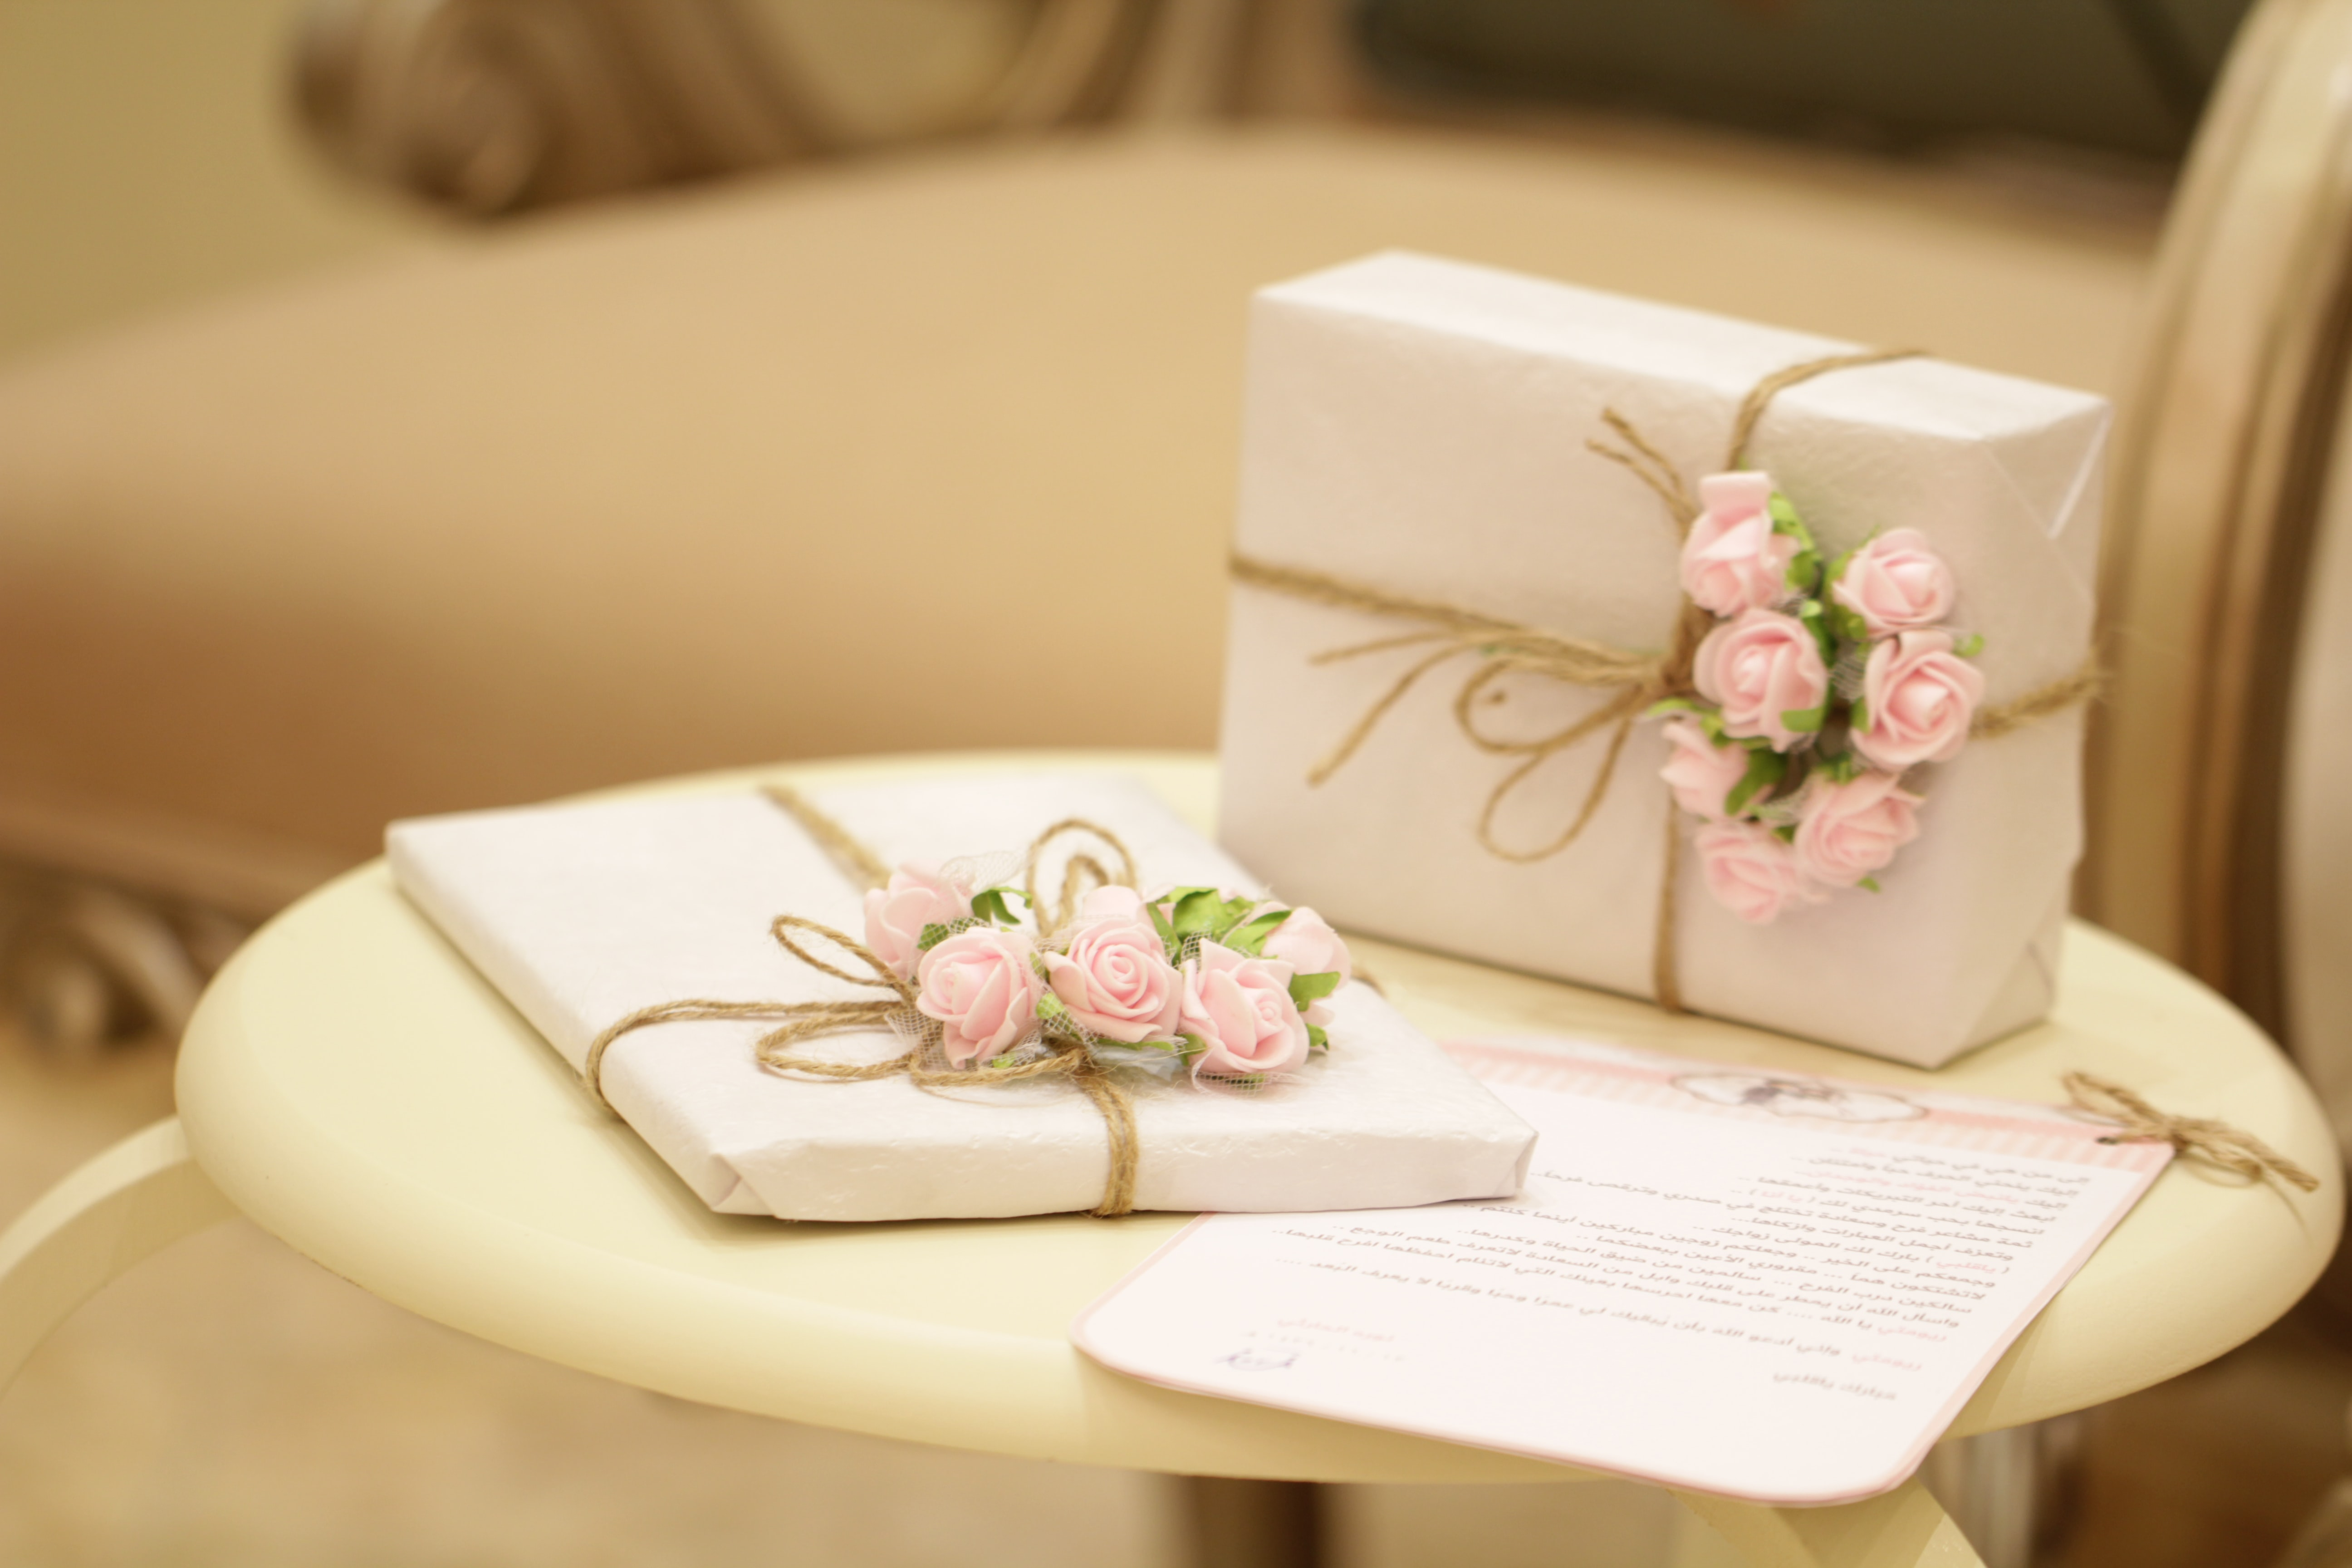 Promising Signs: Wedding Guests are in for an expensive year attending weddings. Image shows 2 gifts on a white table. Each gift is wrapped in white paper and tied with string and pink roses.